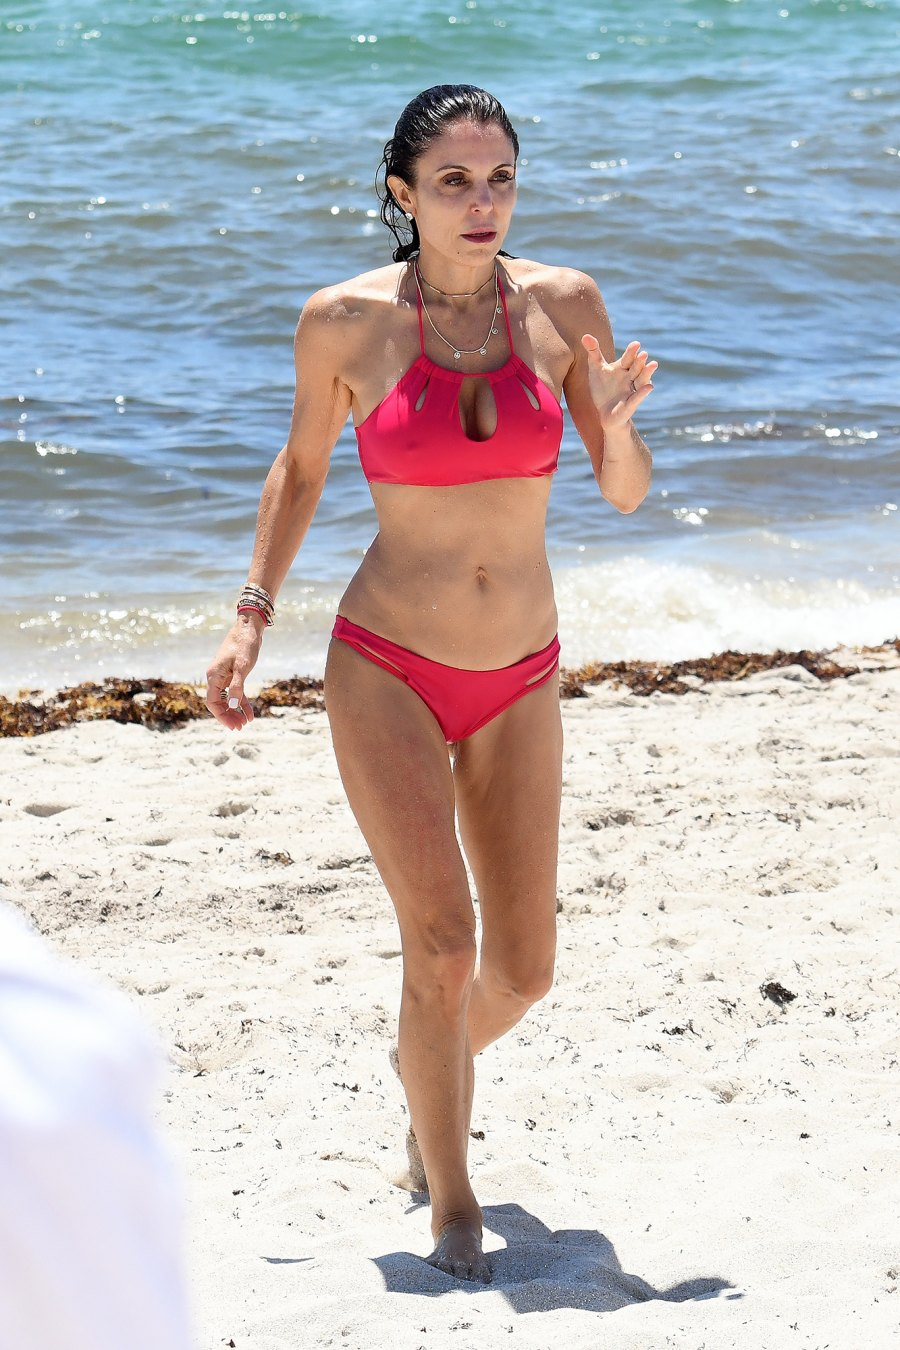 Bethenny Frankel Shows Off Fit Body in Hot Pink Cut-Out Bikini